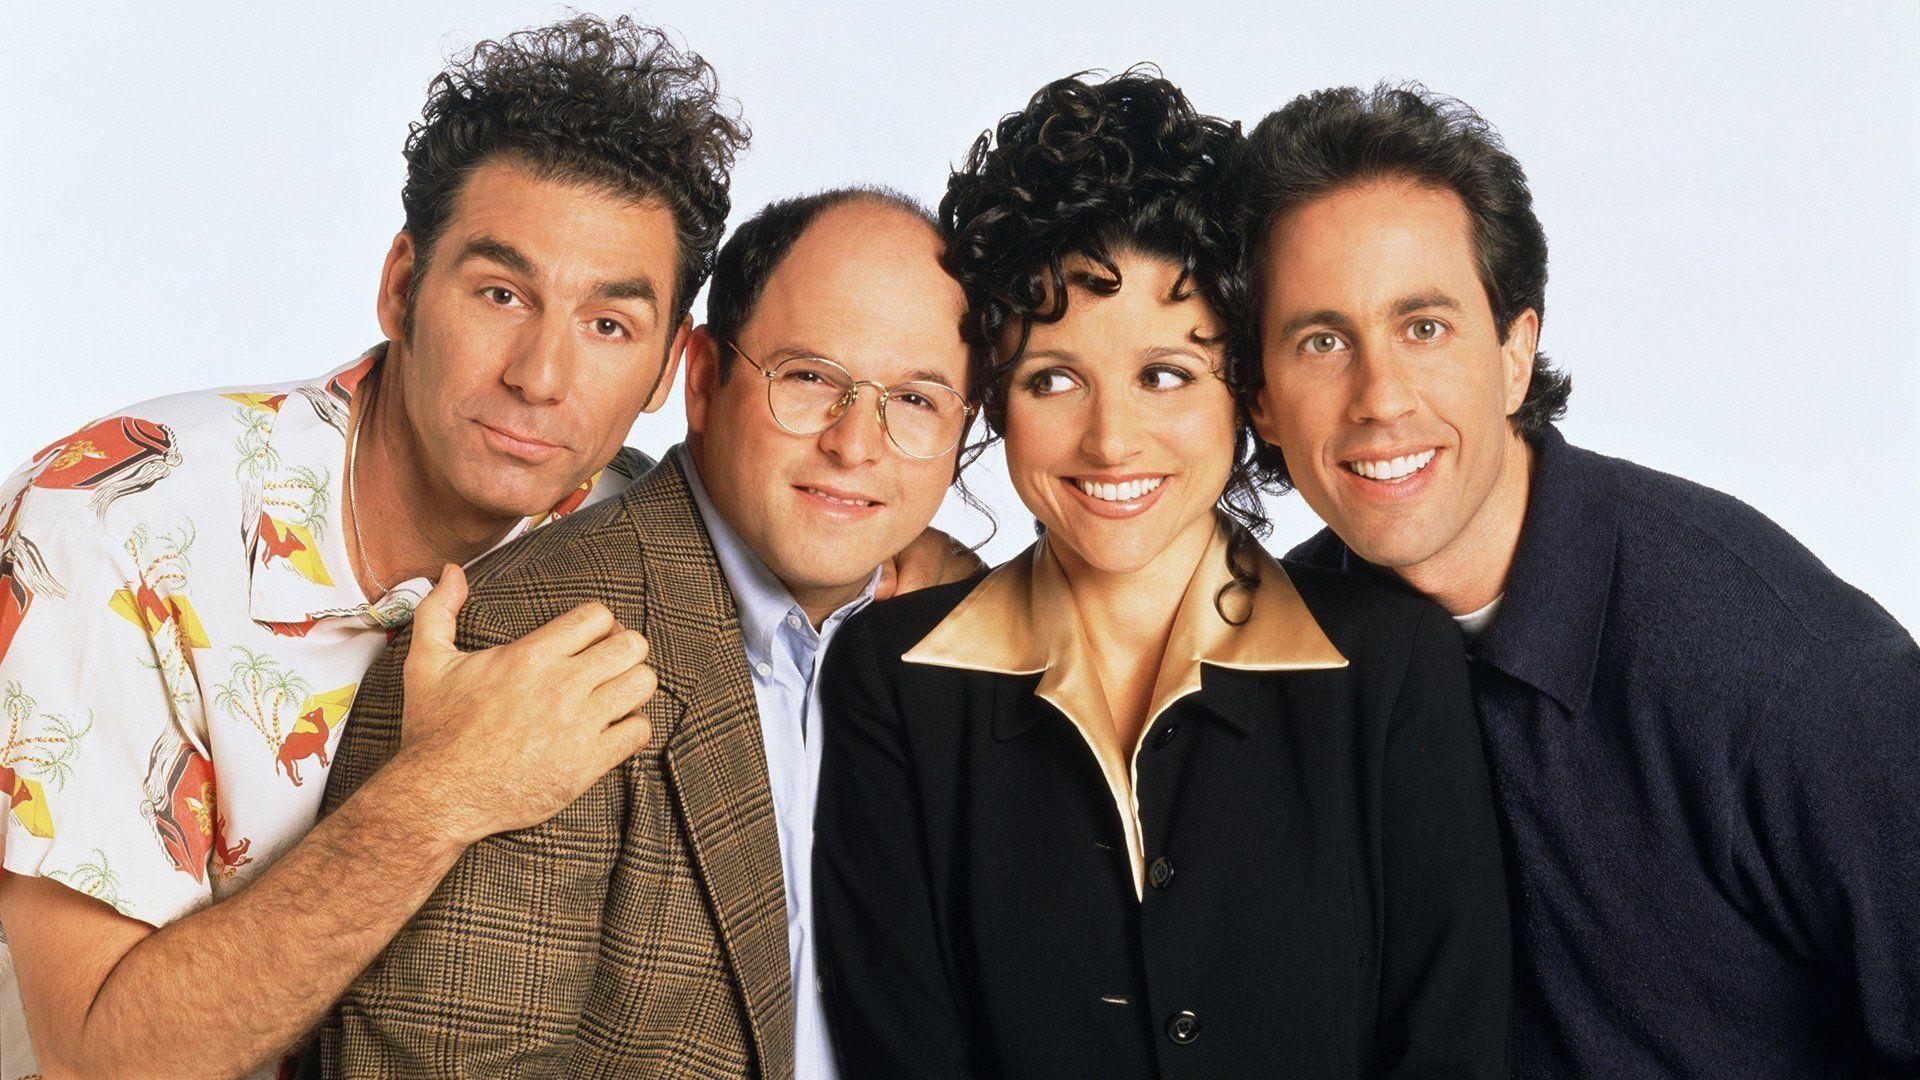 Seinfeld Computer Wallpapers, Desktop Backgrounds